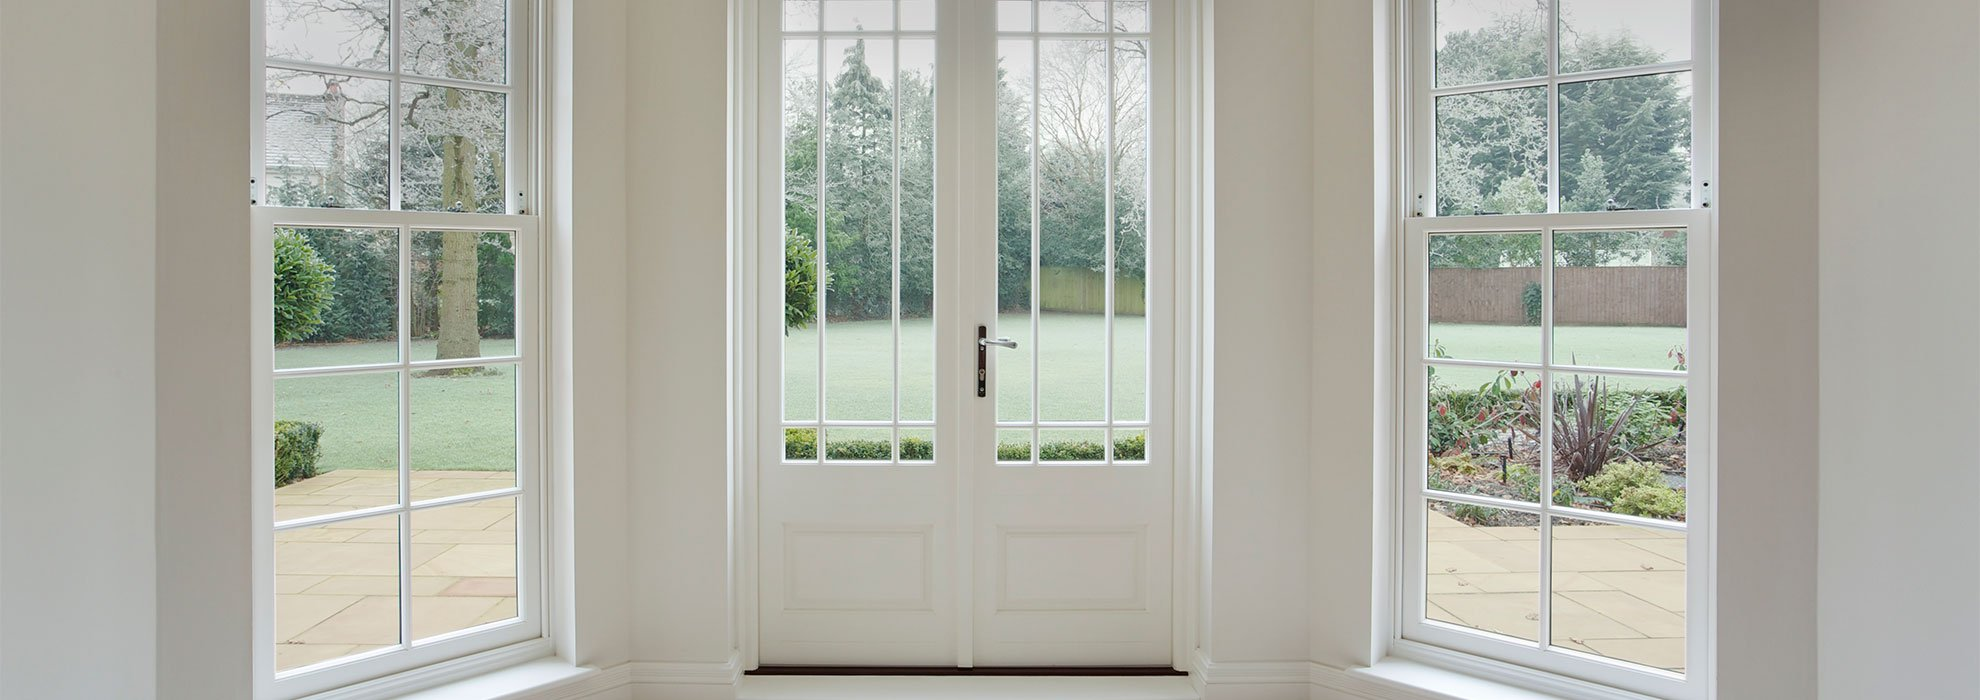 white frame windows and doors